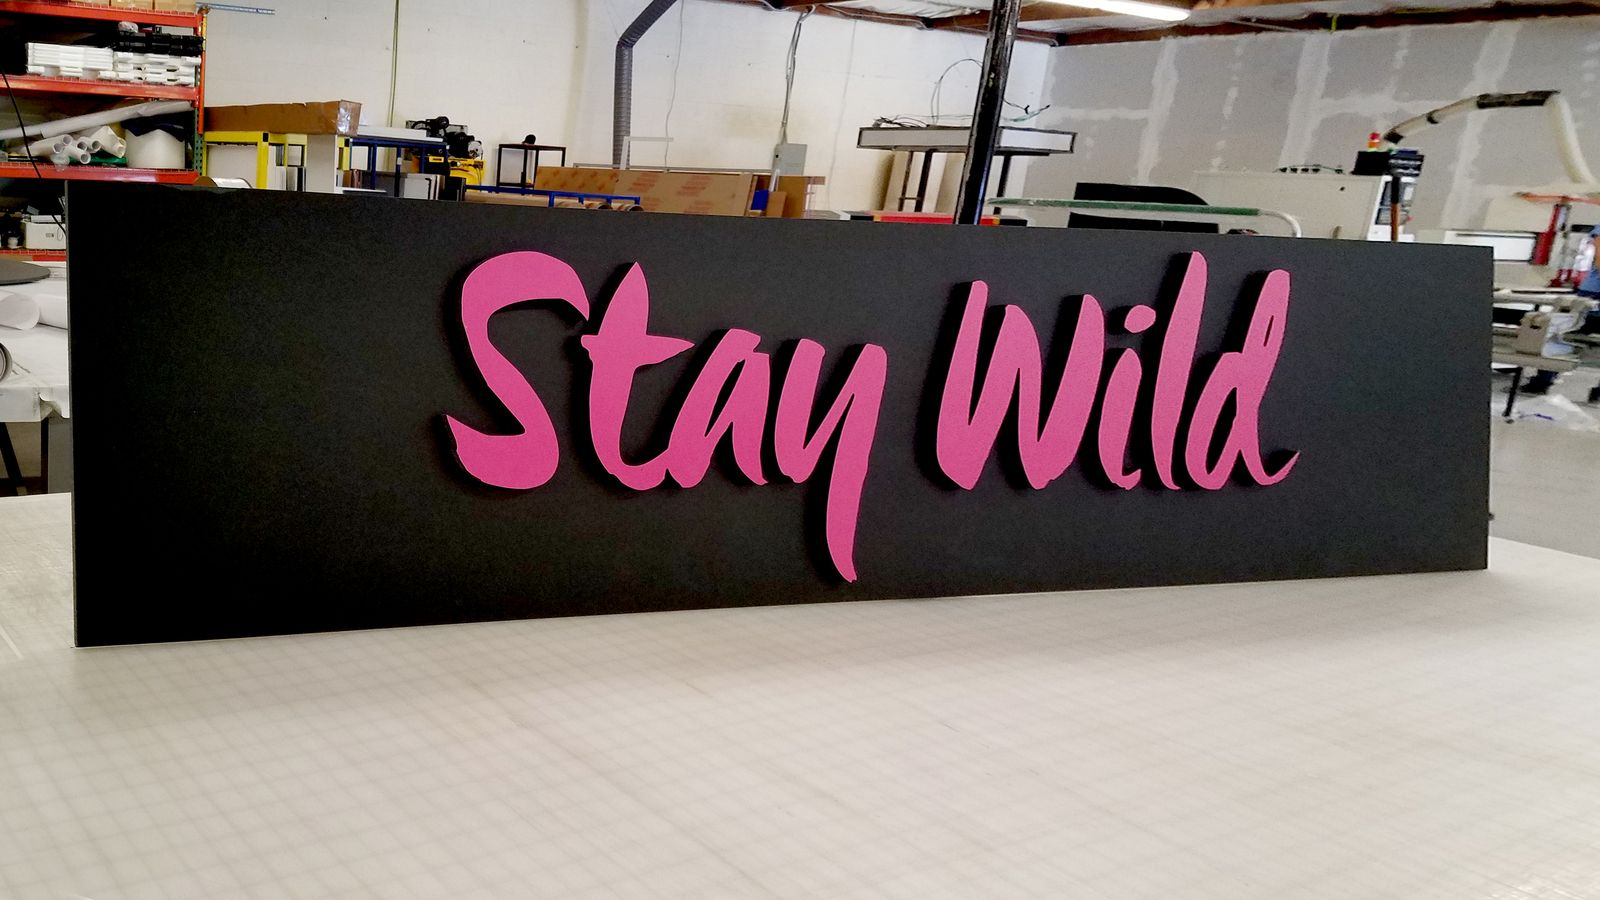 Stay Wild 3d foam letters and stand sign in pink and black colors made of gatorboard before the signage installation